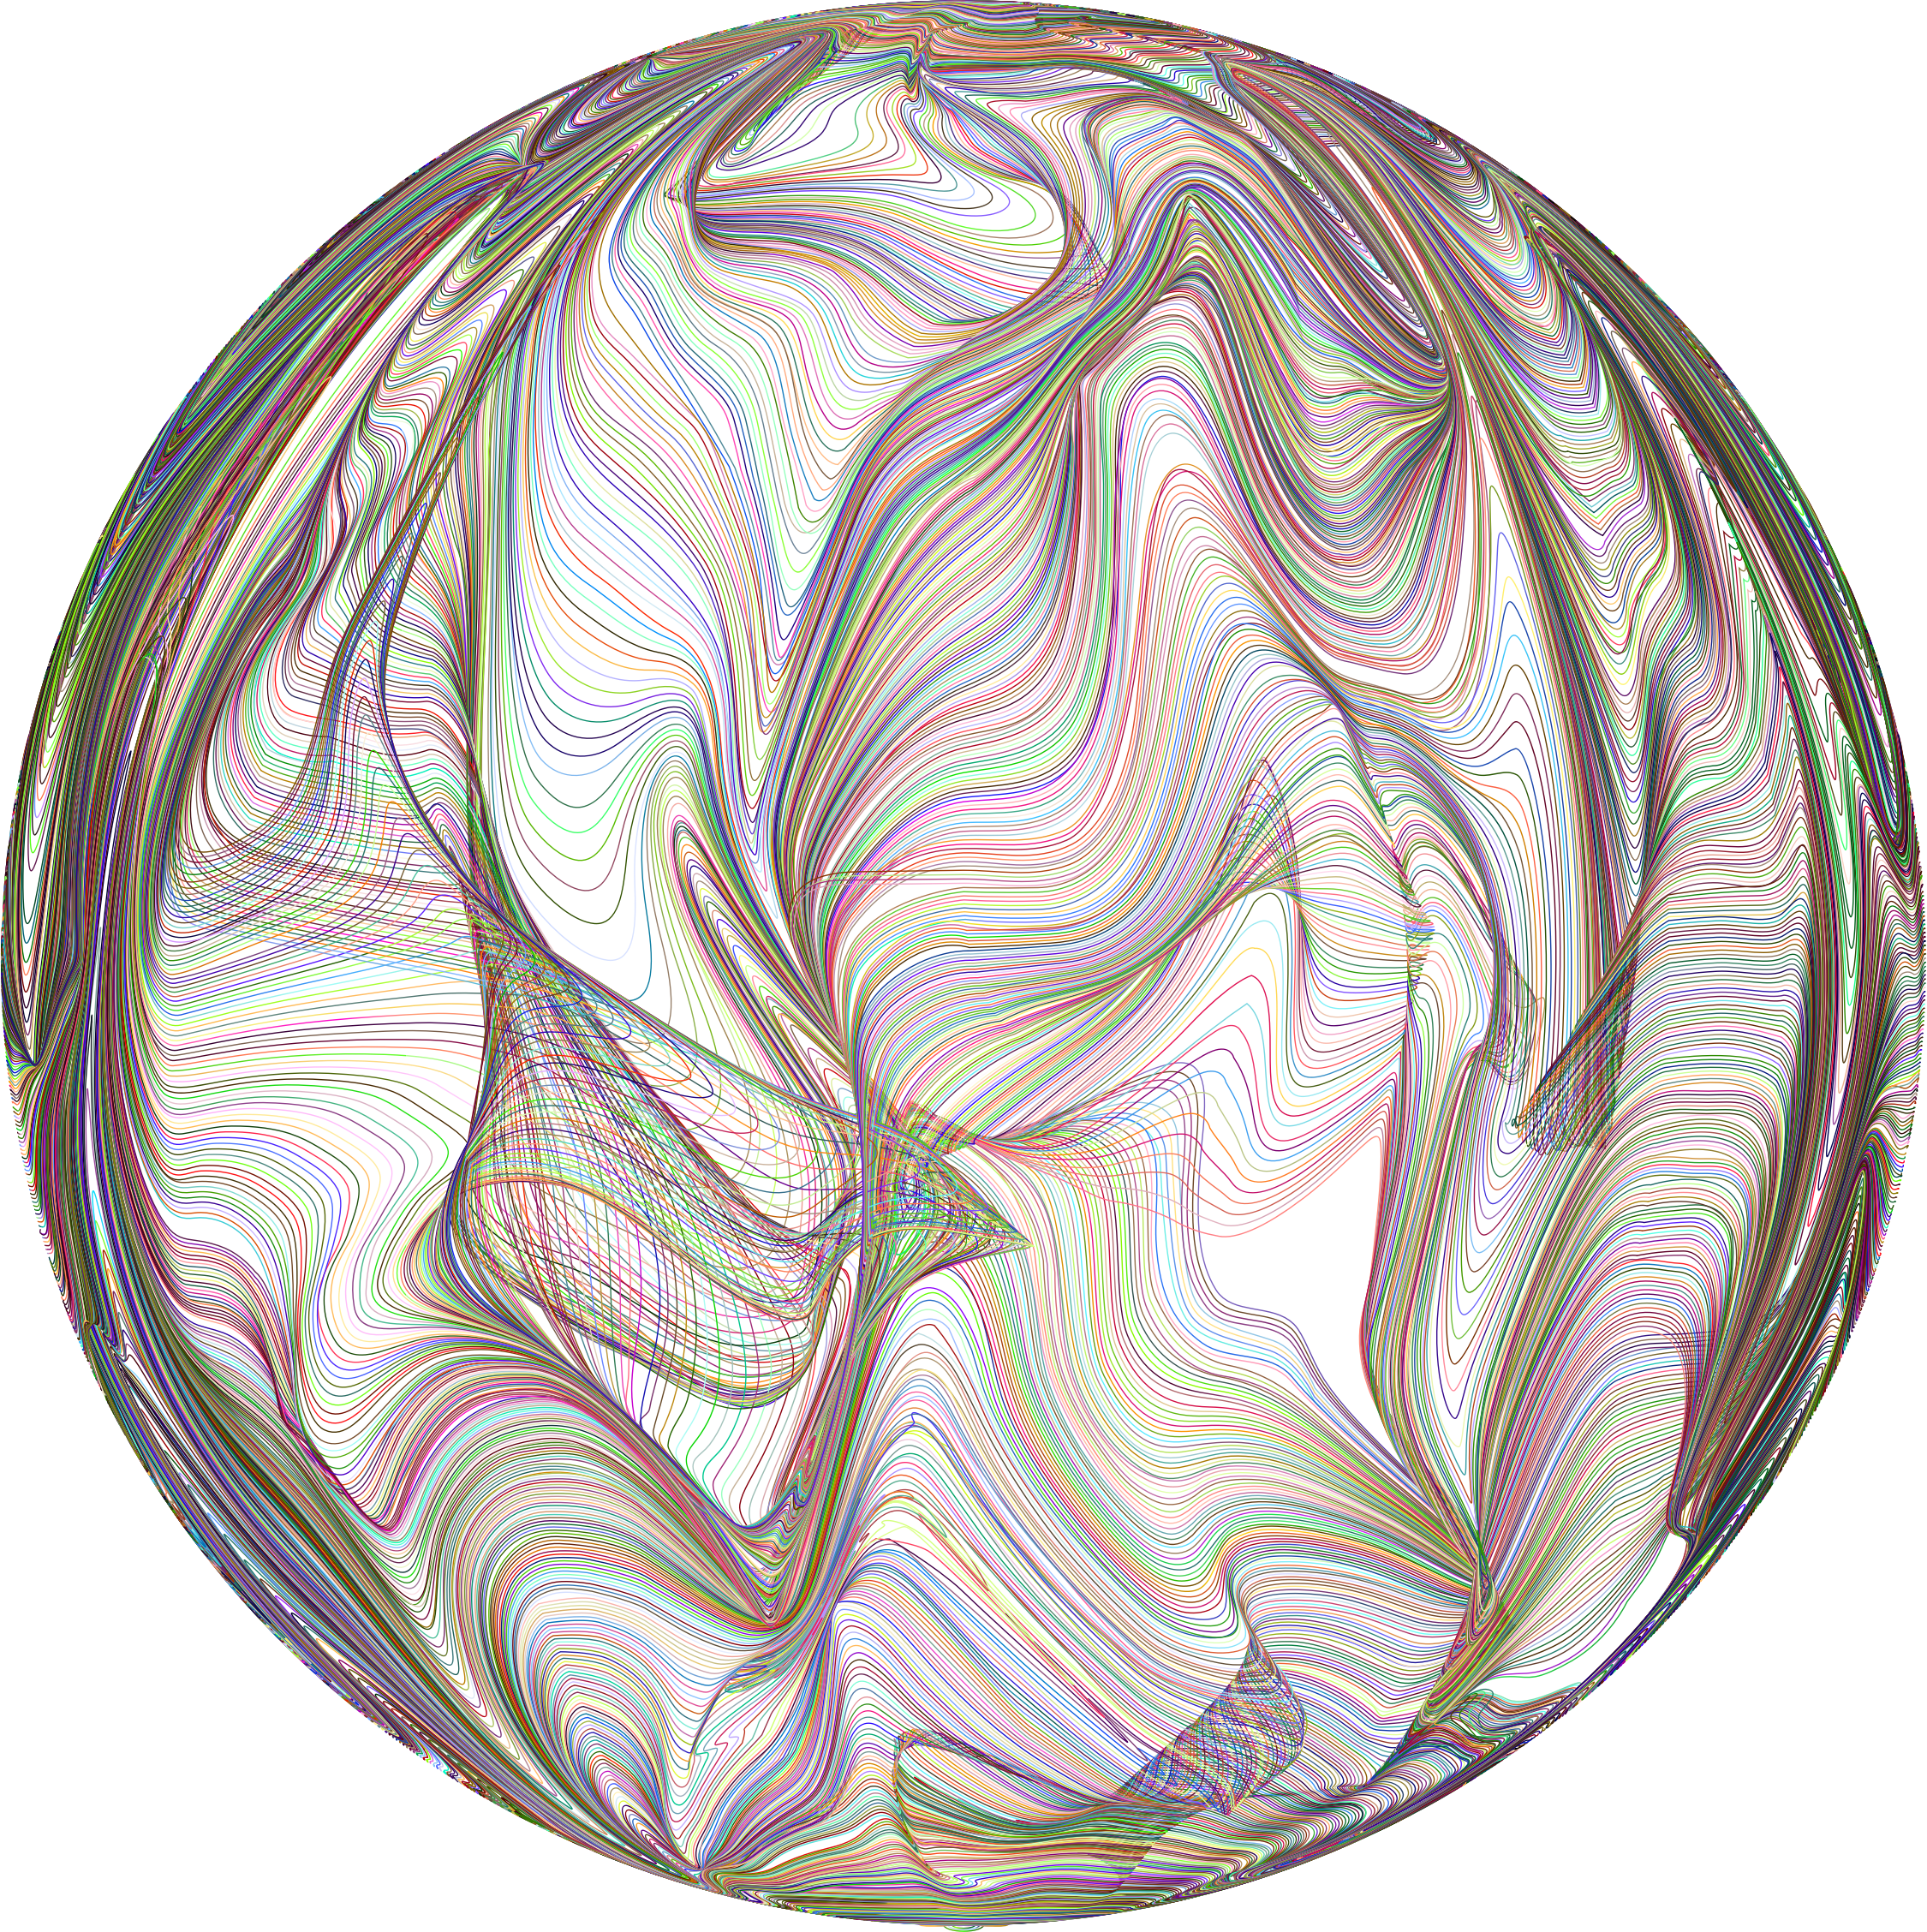 Prismatic Distorted Line Art Sphere by GDJ